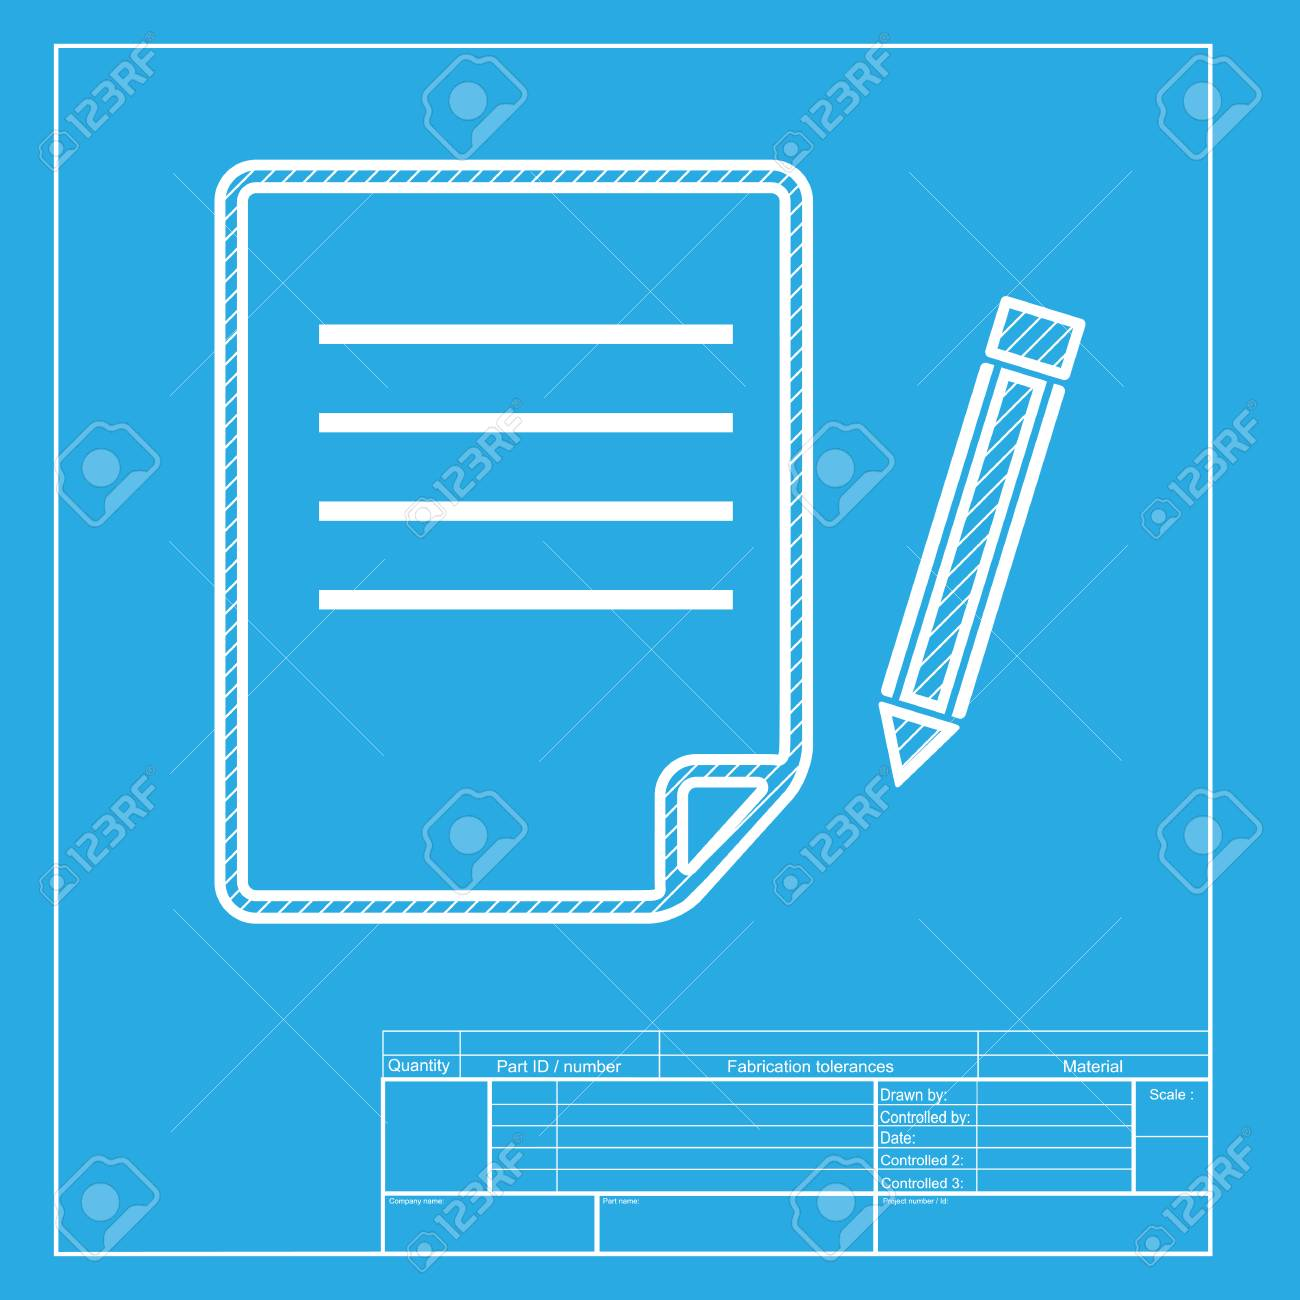 Paper and pencil sign white section of icon on blueprint template paper and pencil sign white section of icon on blueprint template stock vector malvernweather Image collections